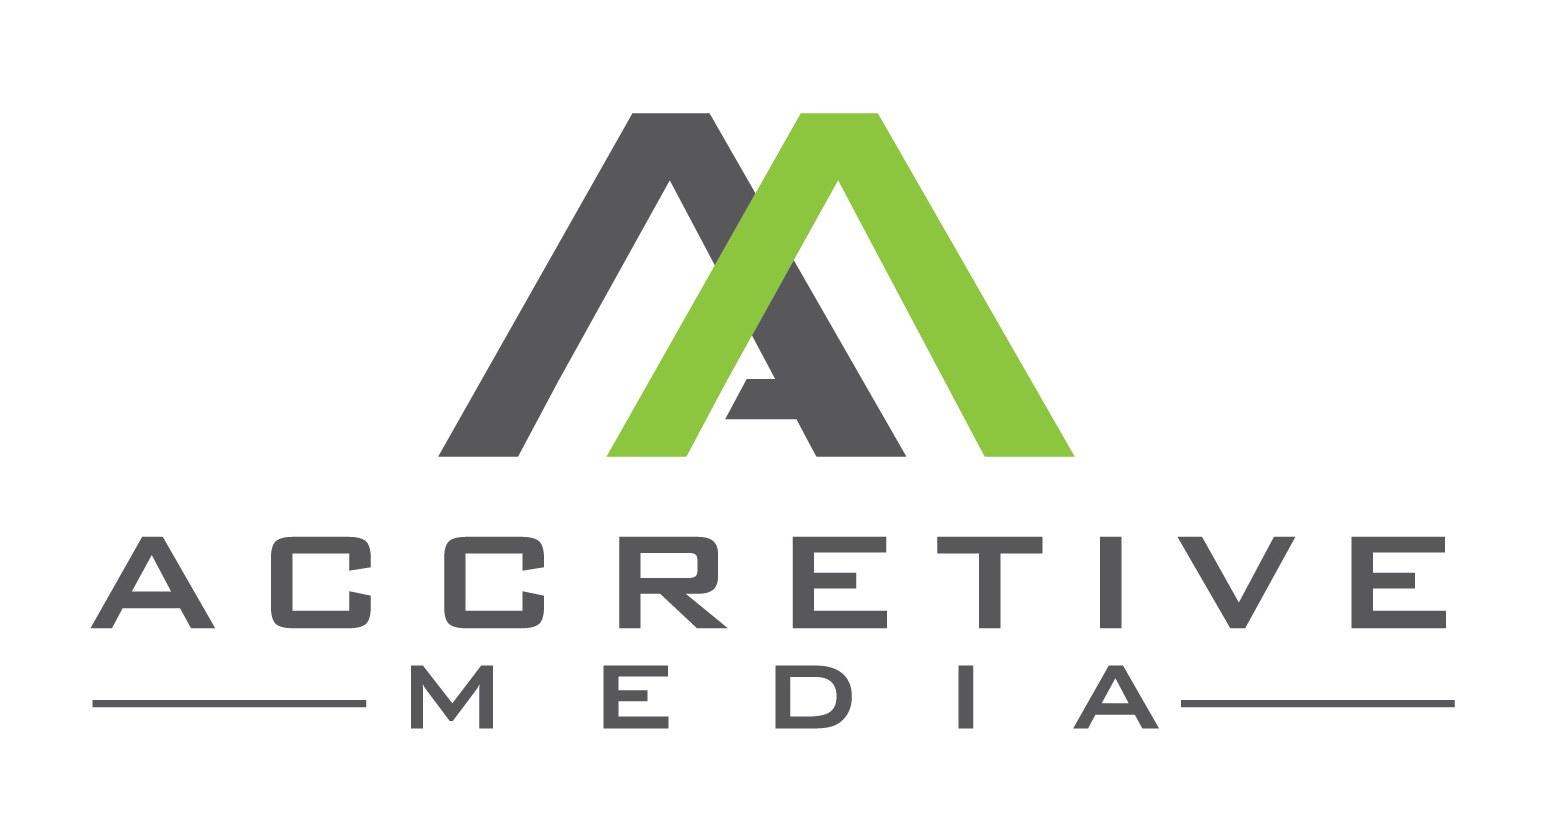 Accretive Media Launches New Programmatic Digital Out-of-Home Advertising Platform Bridging the Digital and Physical Worlds